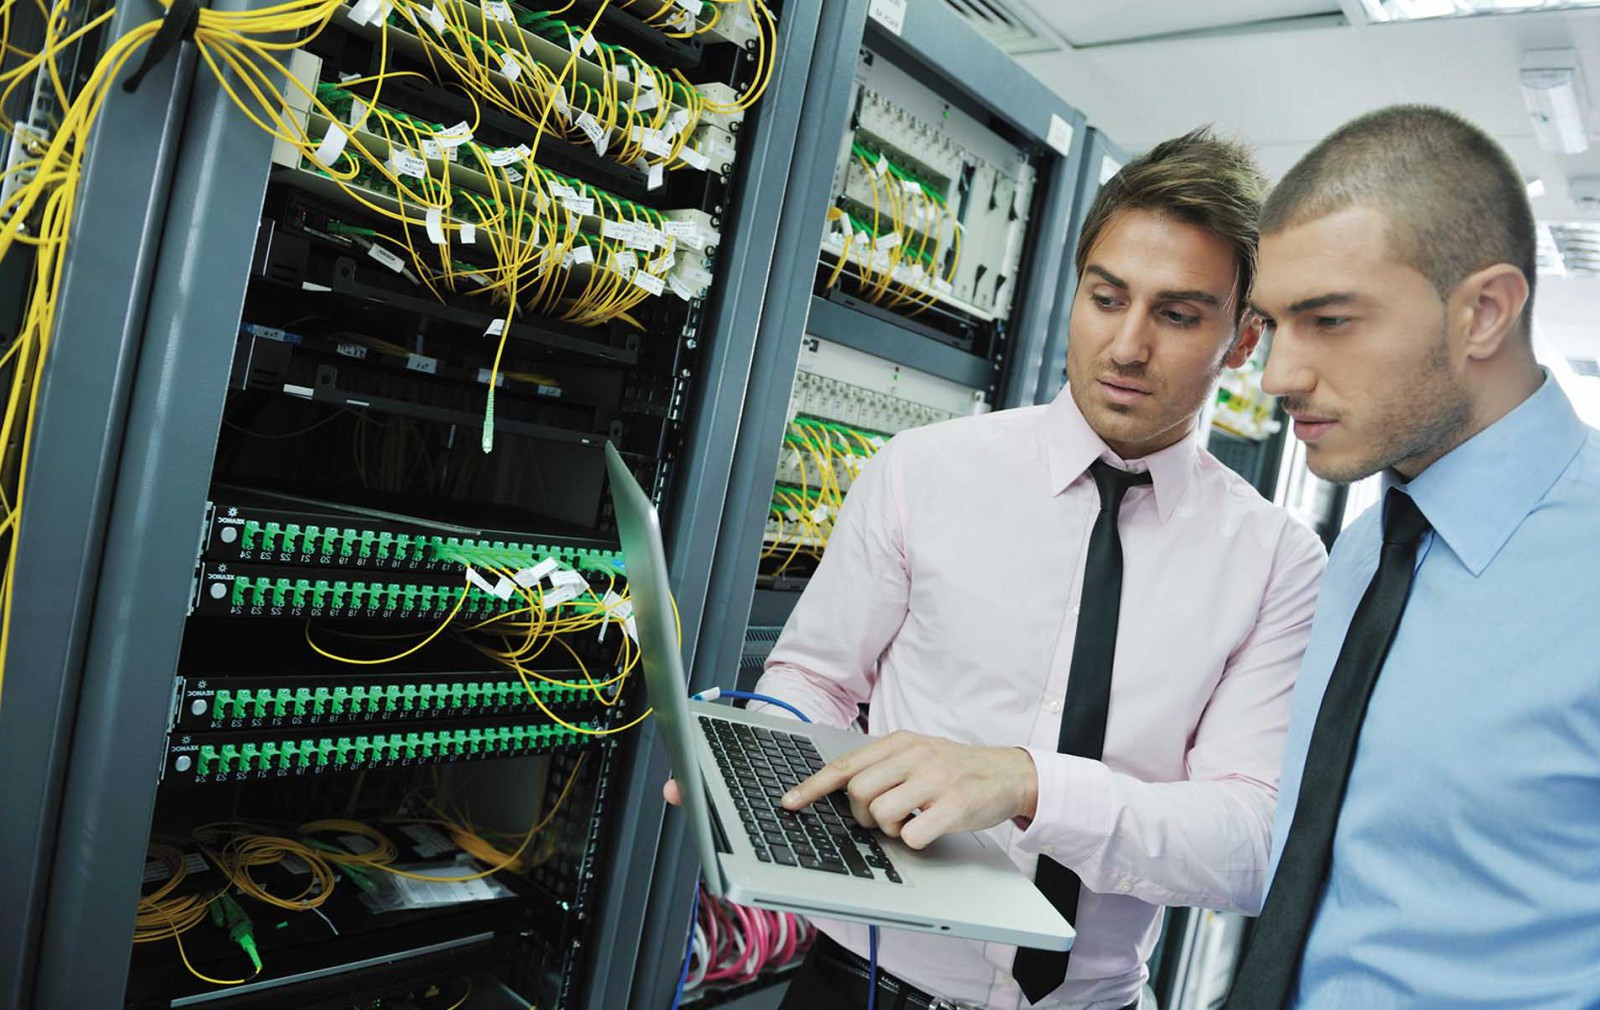 IT Relocation Support Services